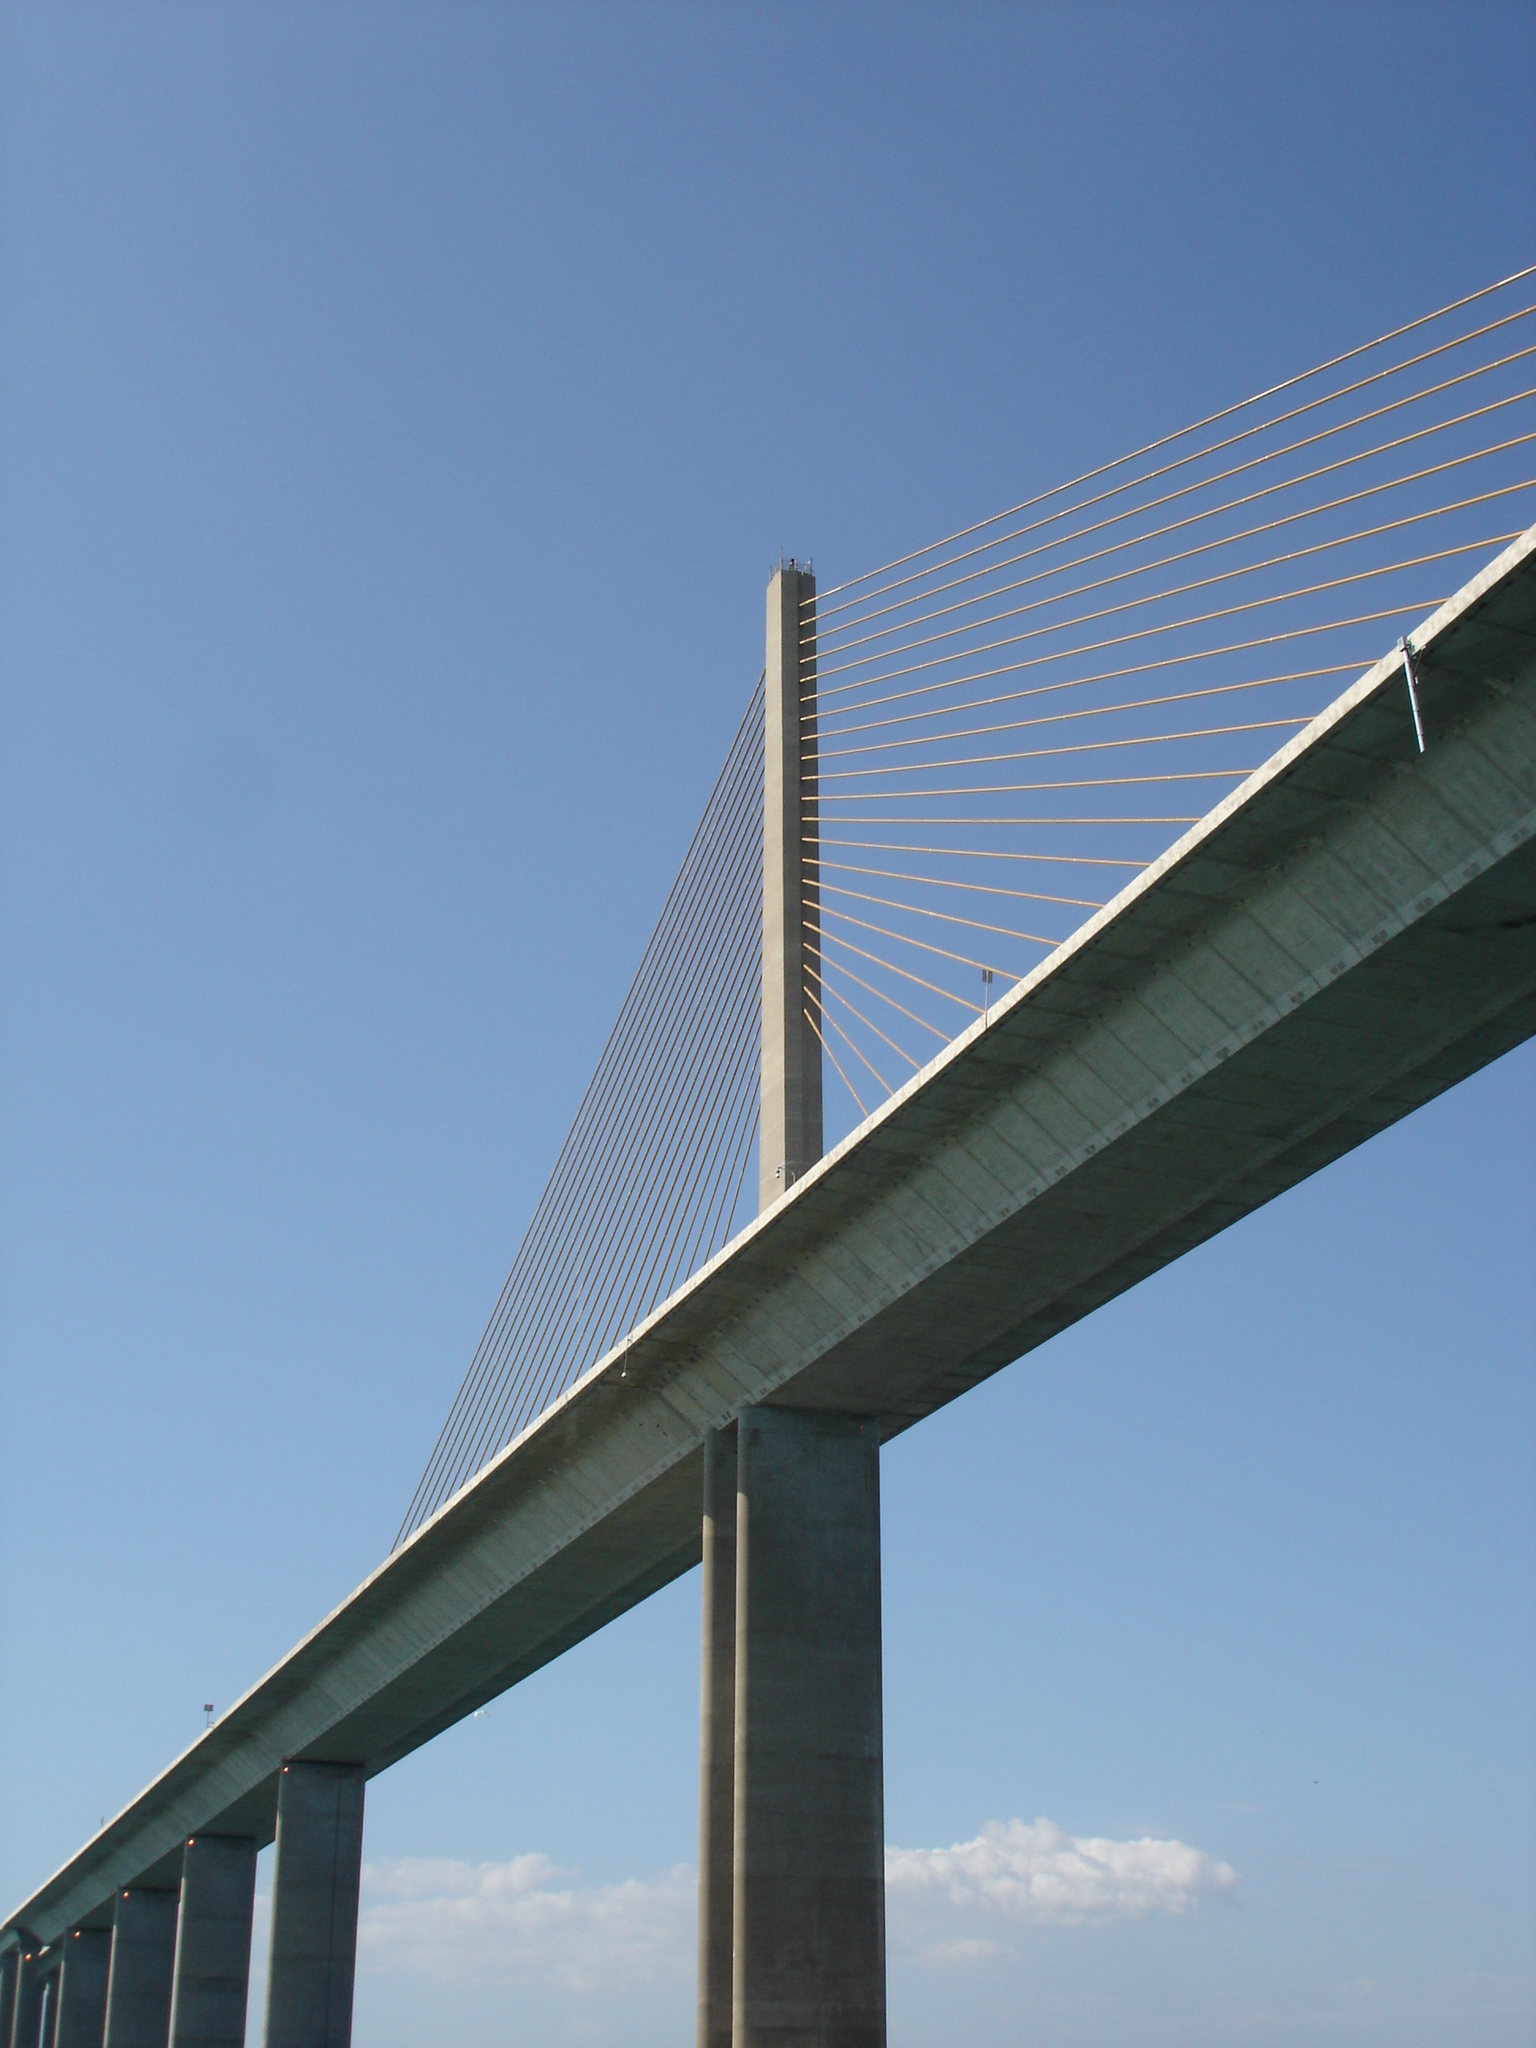 Under the Sunshine Skyway.